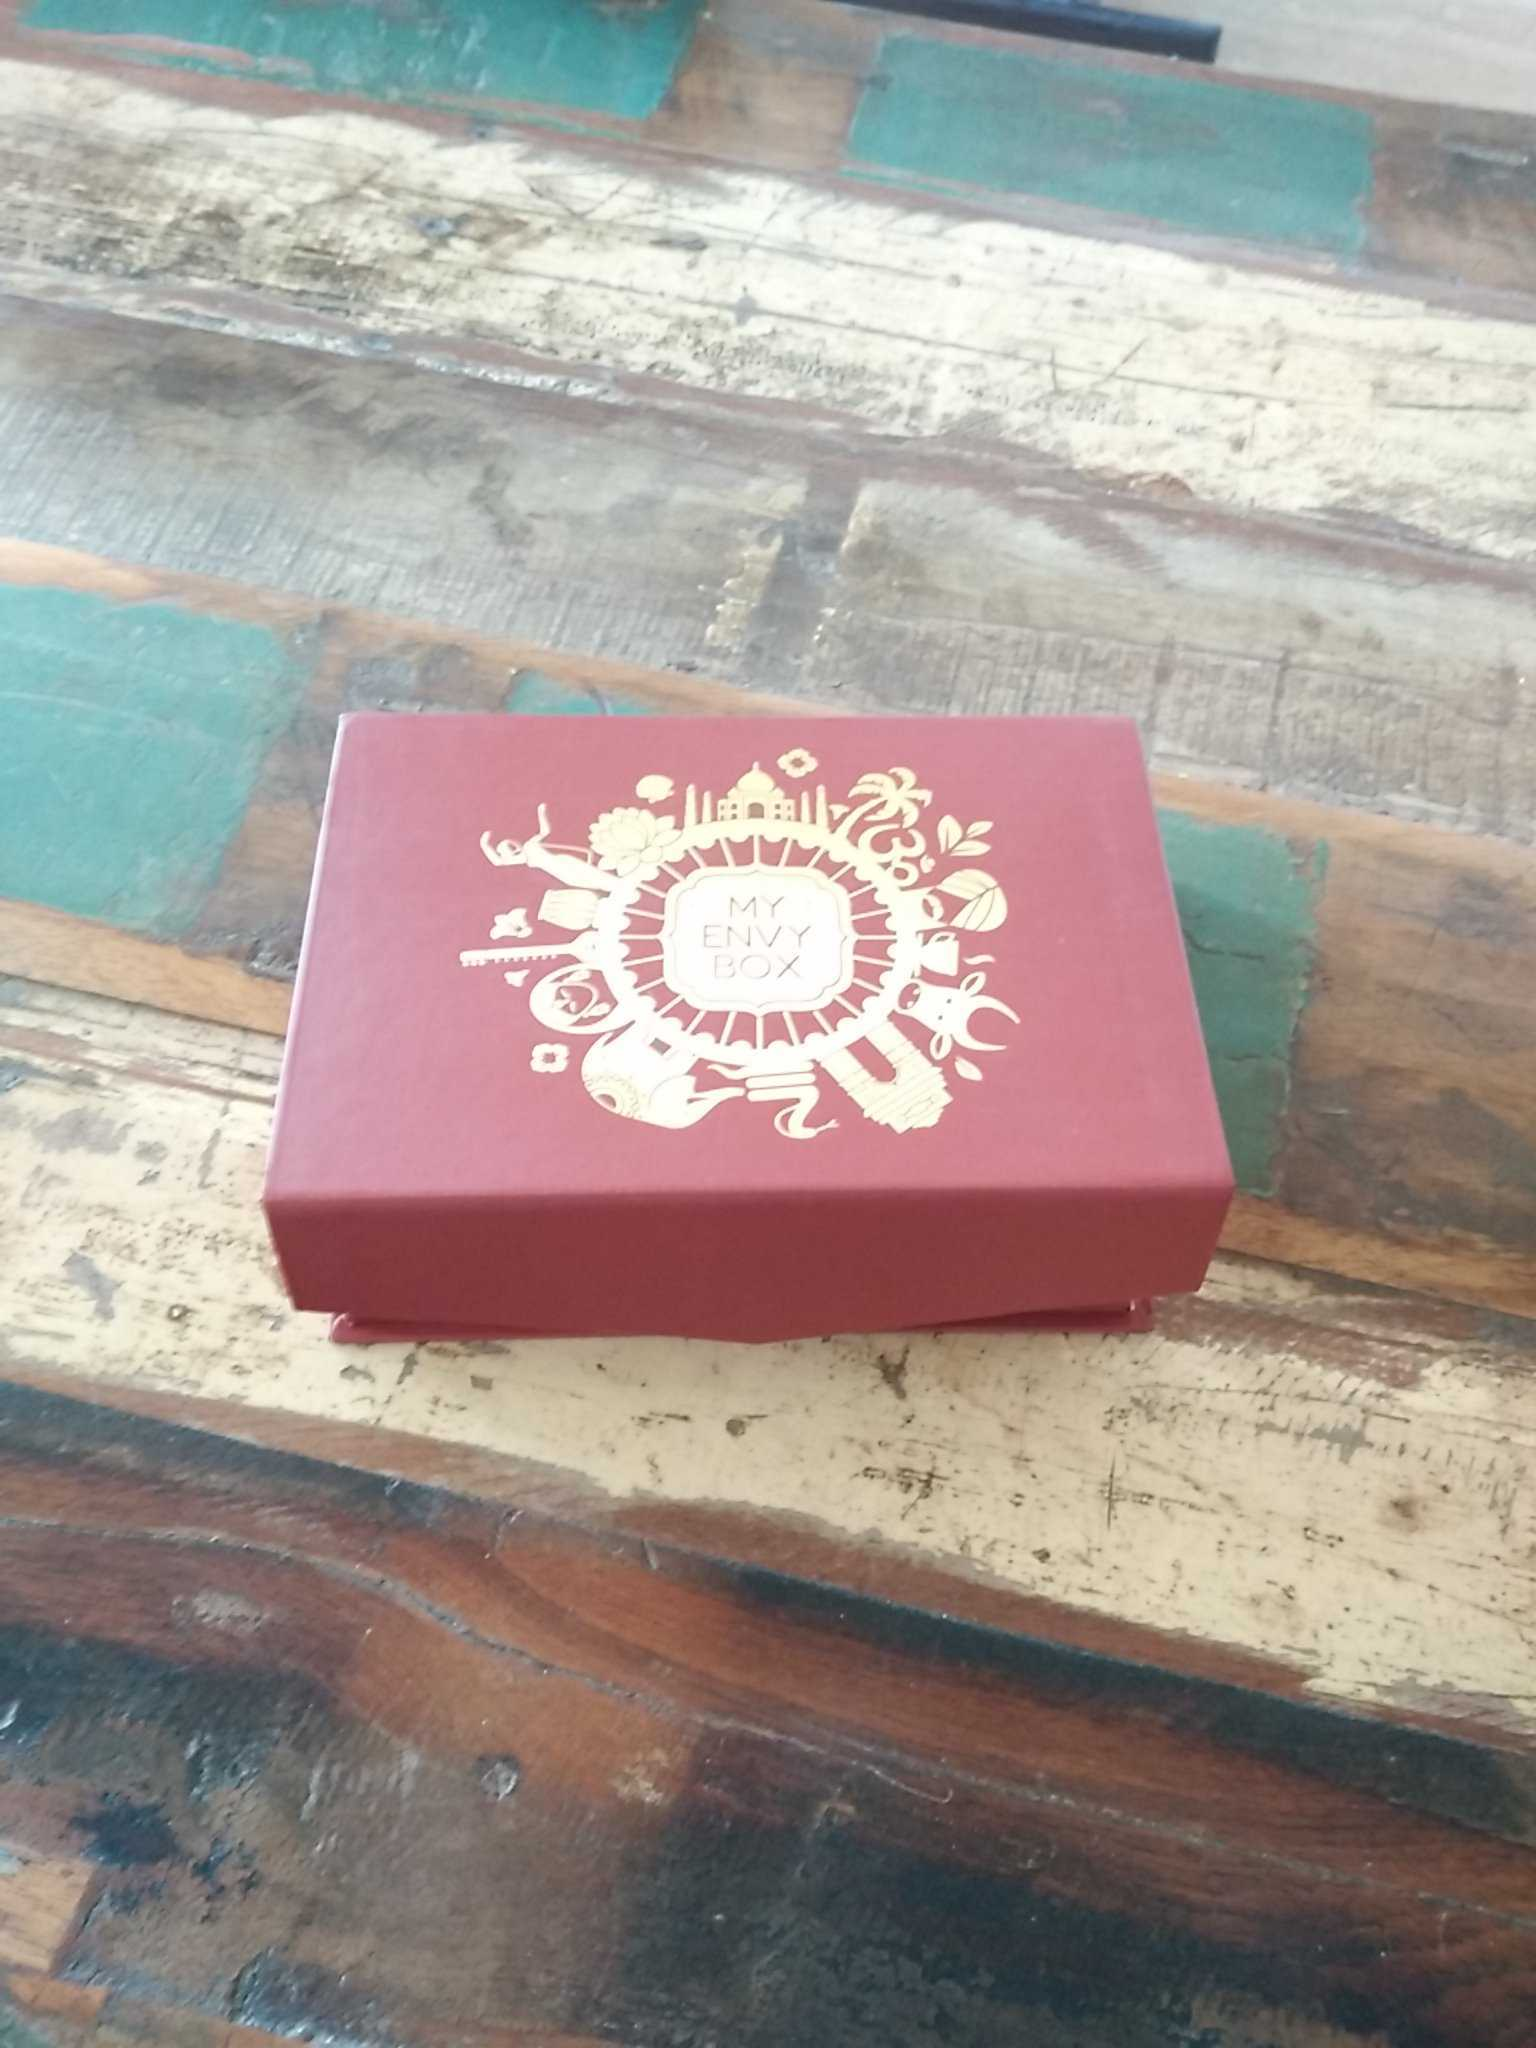 IMG 20150814 125522 - My Envy Box August 2015 Review